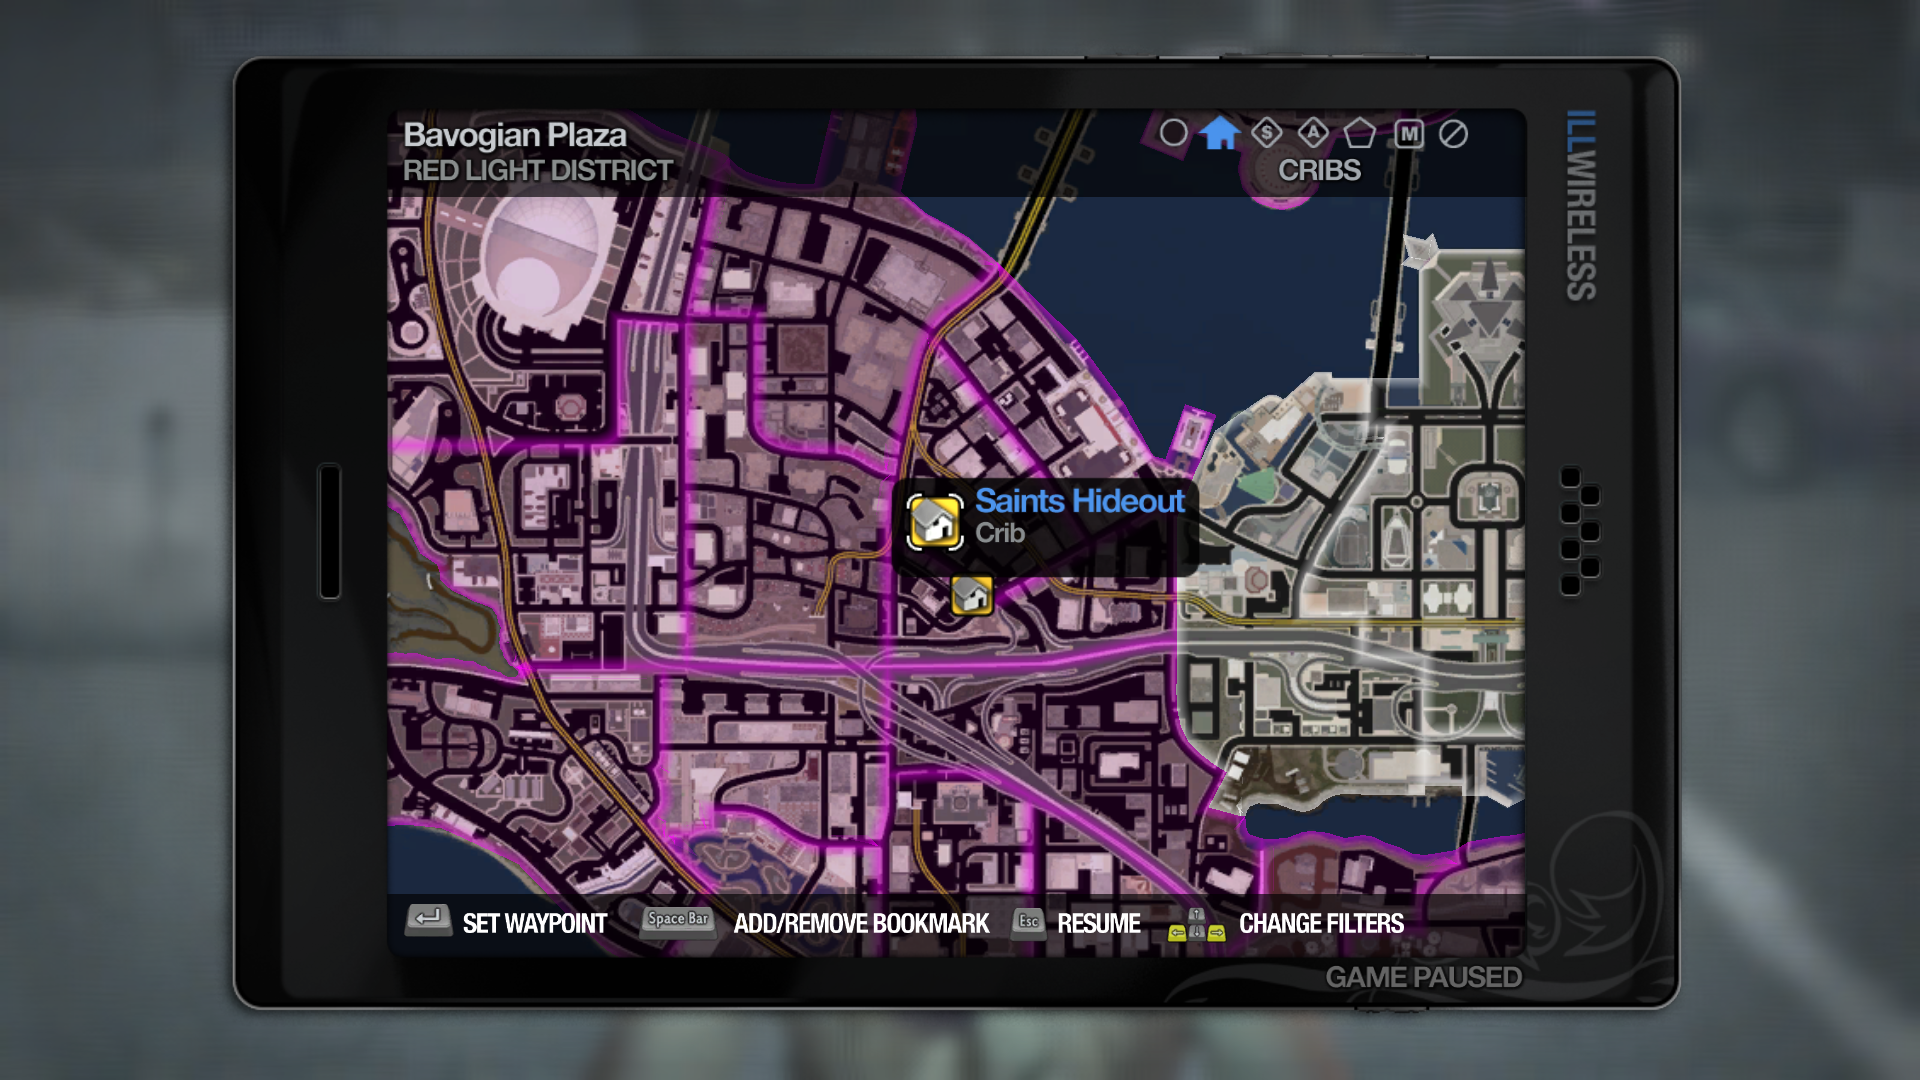 Saints Hideout | Saints Row Wiki | FANDOM powered by Wikia on red dead redemption map full, terraria map full, dying light map full, just cause 2 map full, test drive unlimited 2 map full, gta 4 map full, saints on the map, dota 2 map full, goat simulator map full, far cry 4 map full,